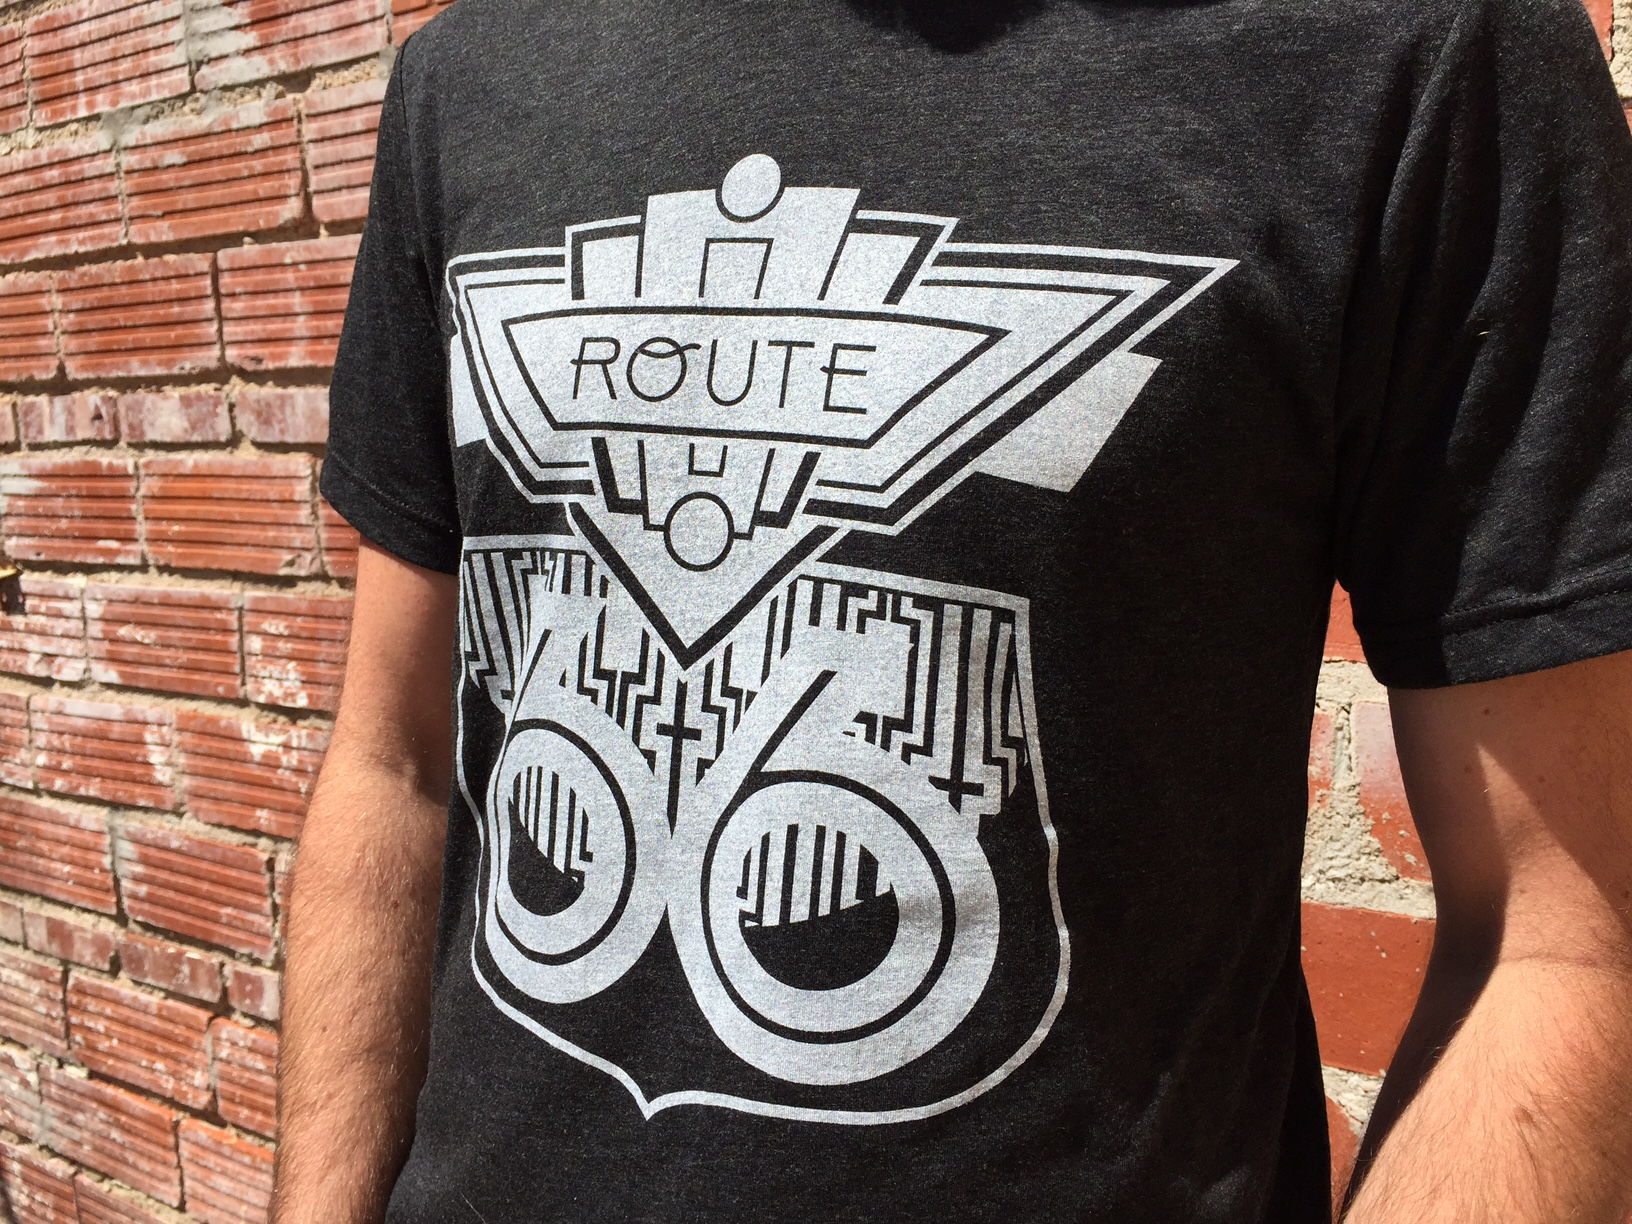 Deco Route 66 Shirt